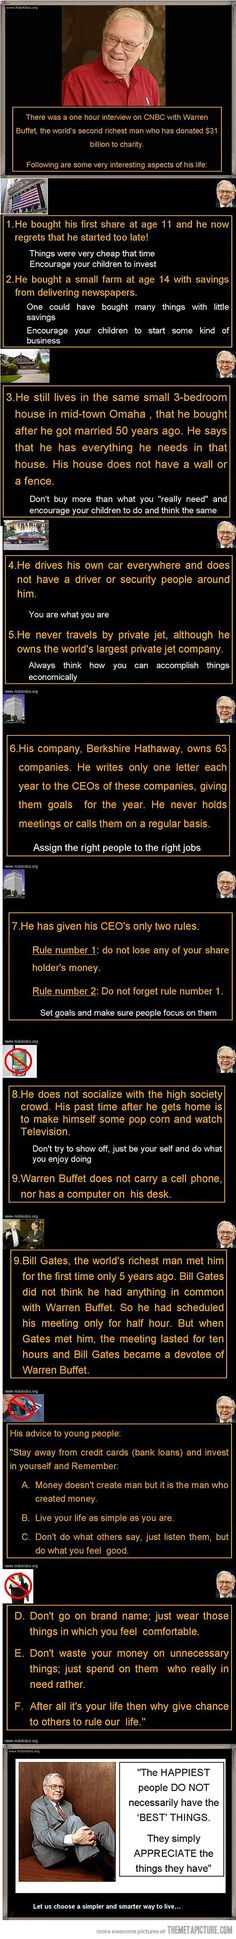 2nd richest man in the world...slightly shocking. but people need to live like him.